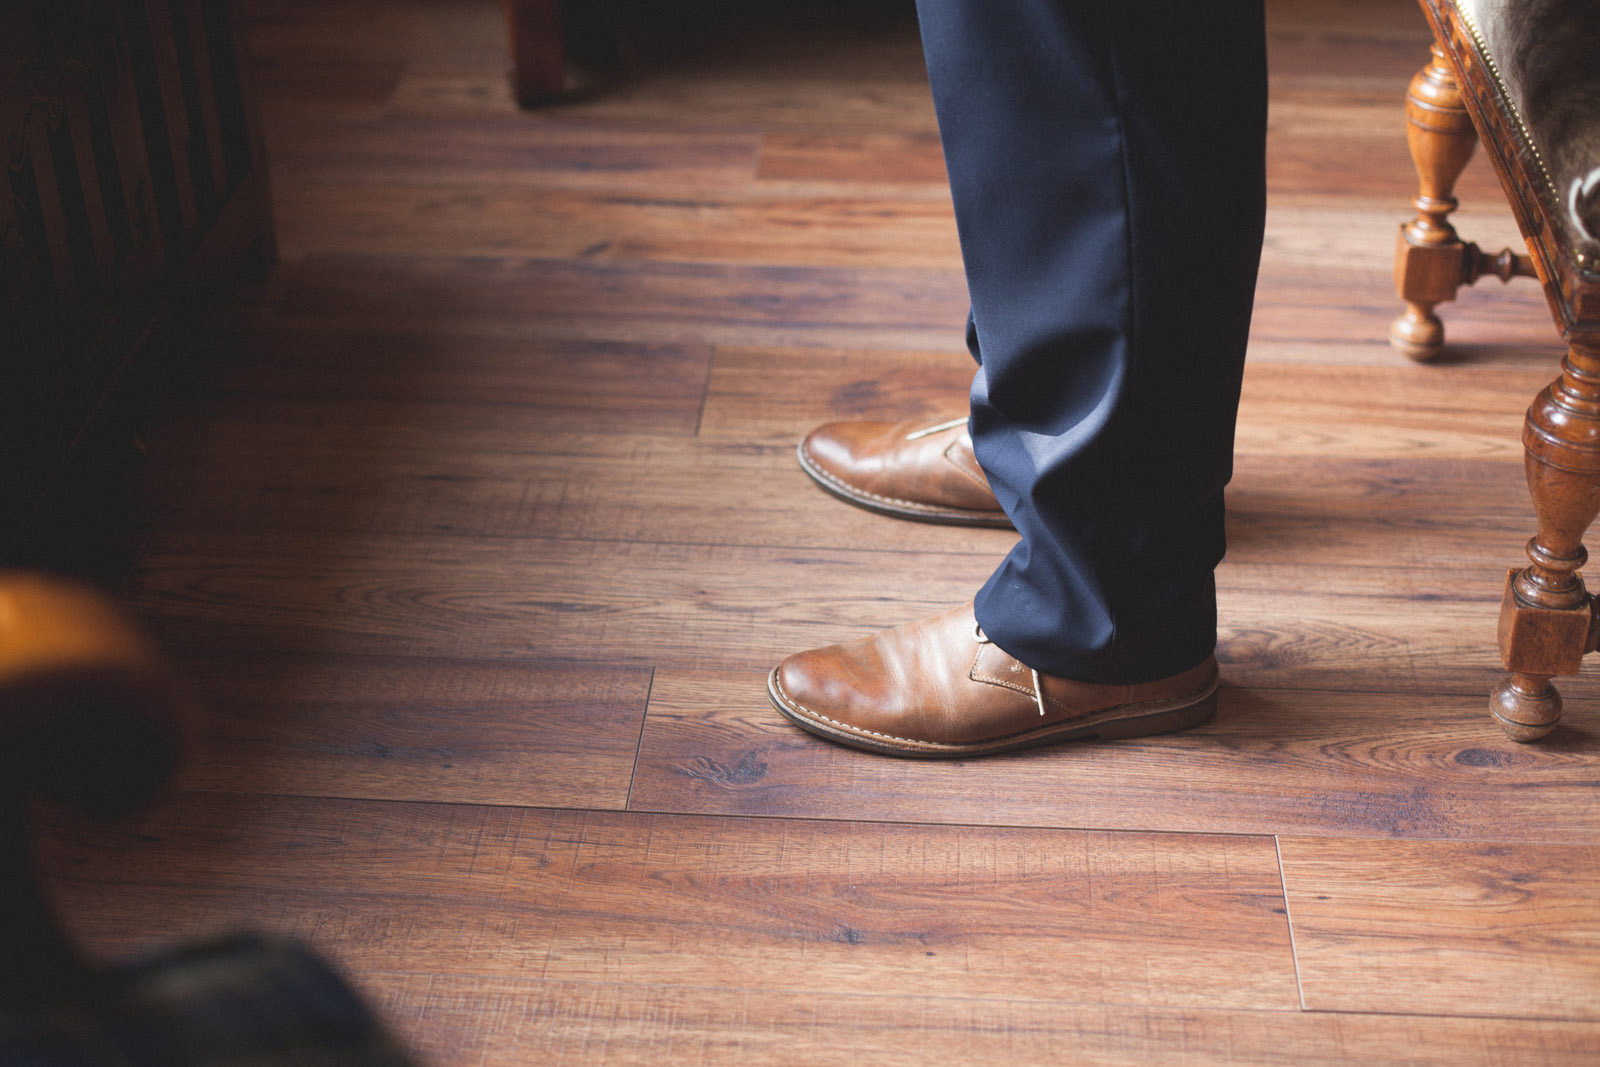 020-image-of-groom-shoes-against-wood-floor